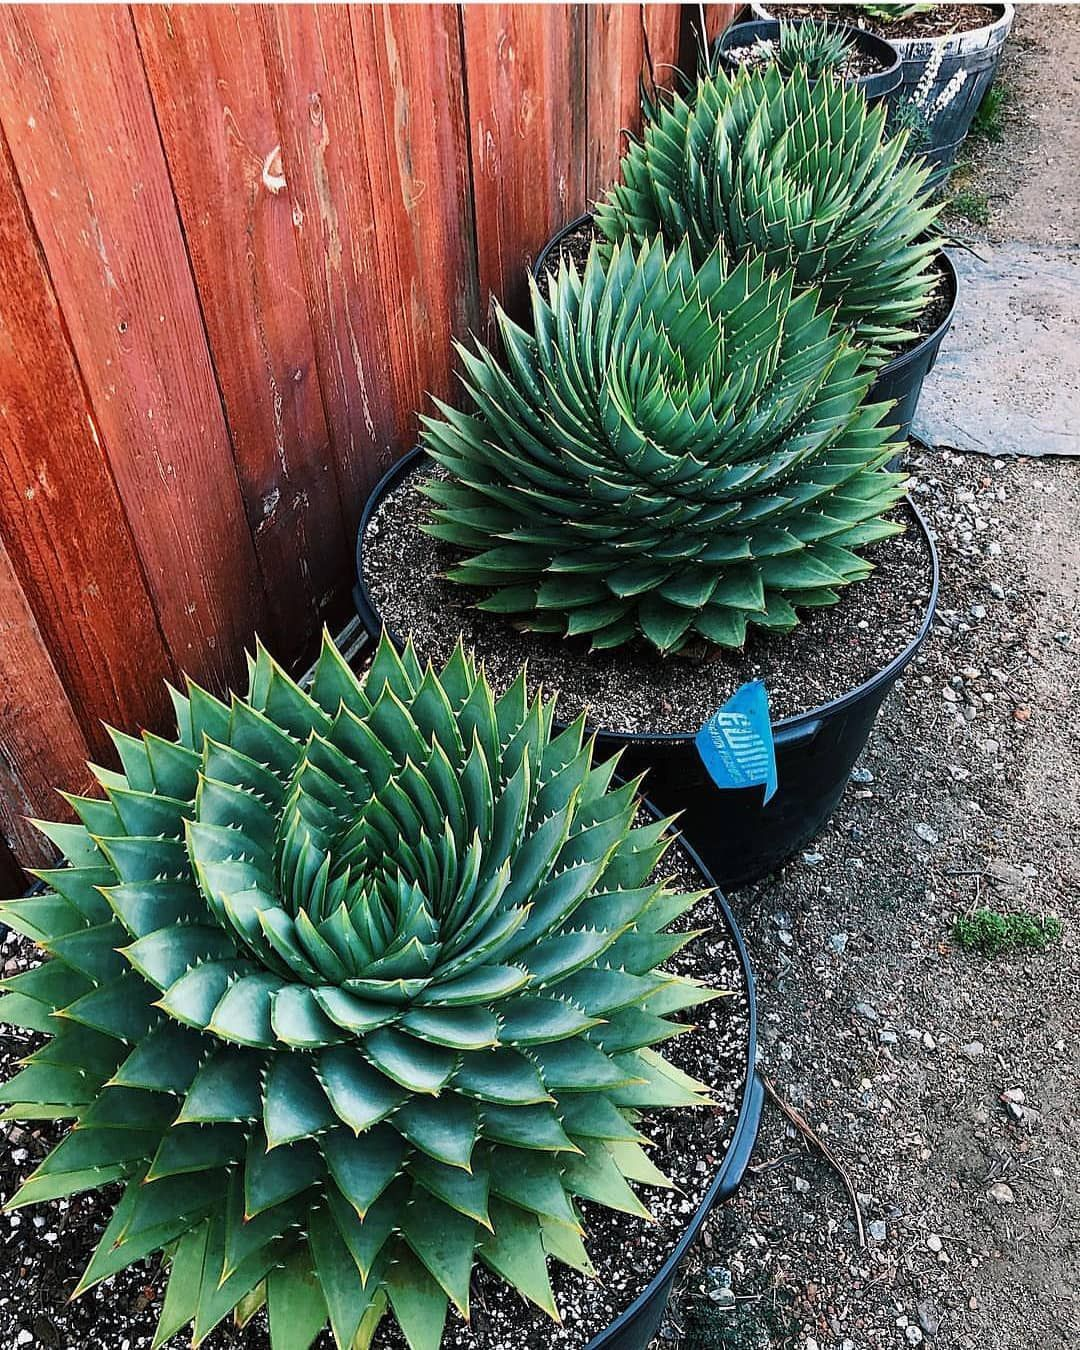 Amazing Spiral aloe shot by plant.list 🌱 Succulent seed